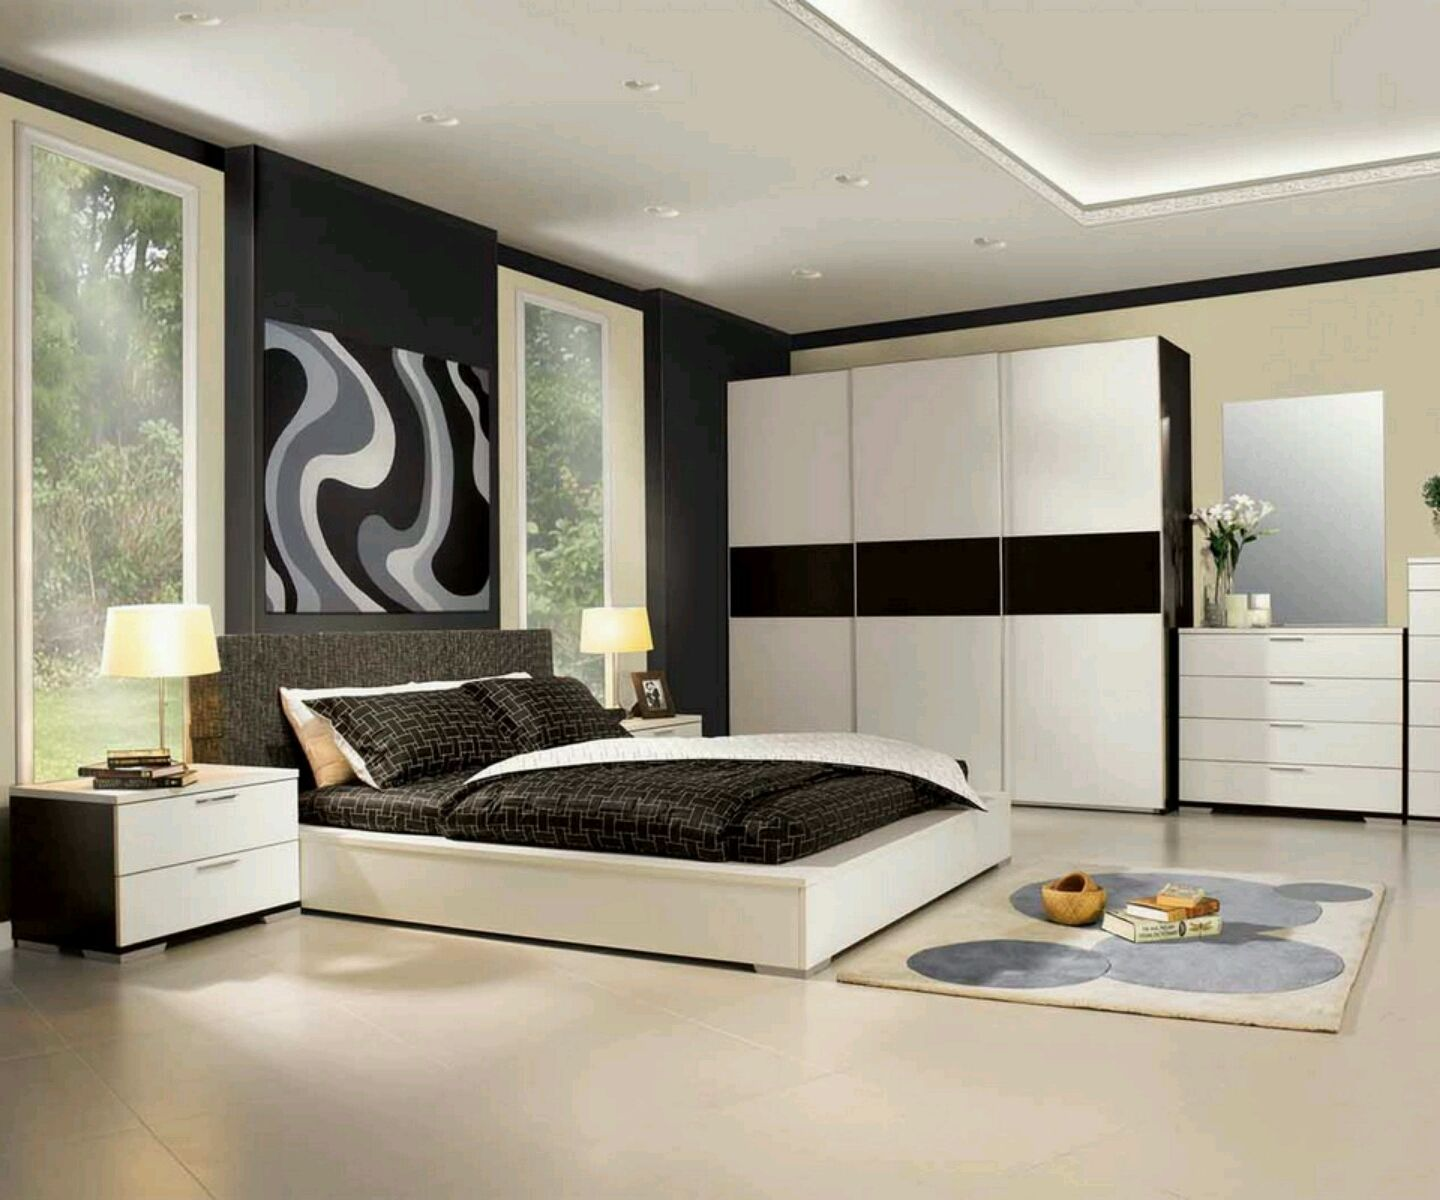 latest bedroom furniture designs latest bedroom furniture. Modern Bedroom Furniture Design For More Pictures And Ideas, Please Visit My Blog Http://pesonashop.com Latest Designs E